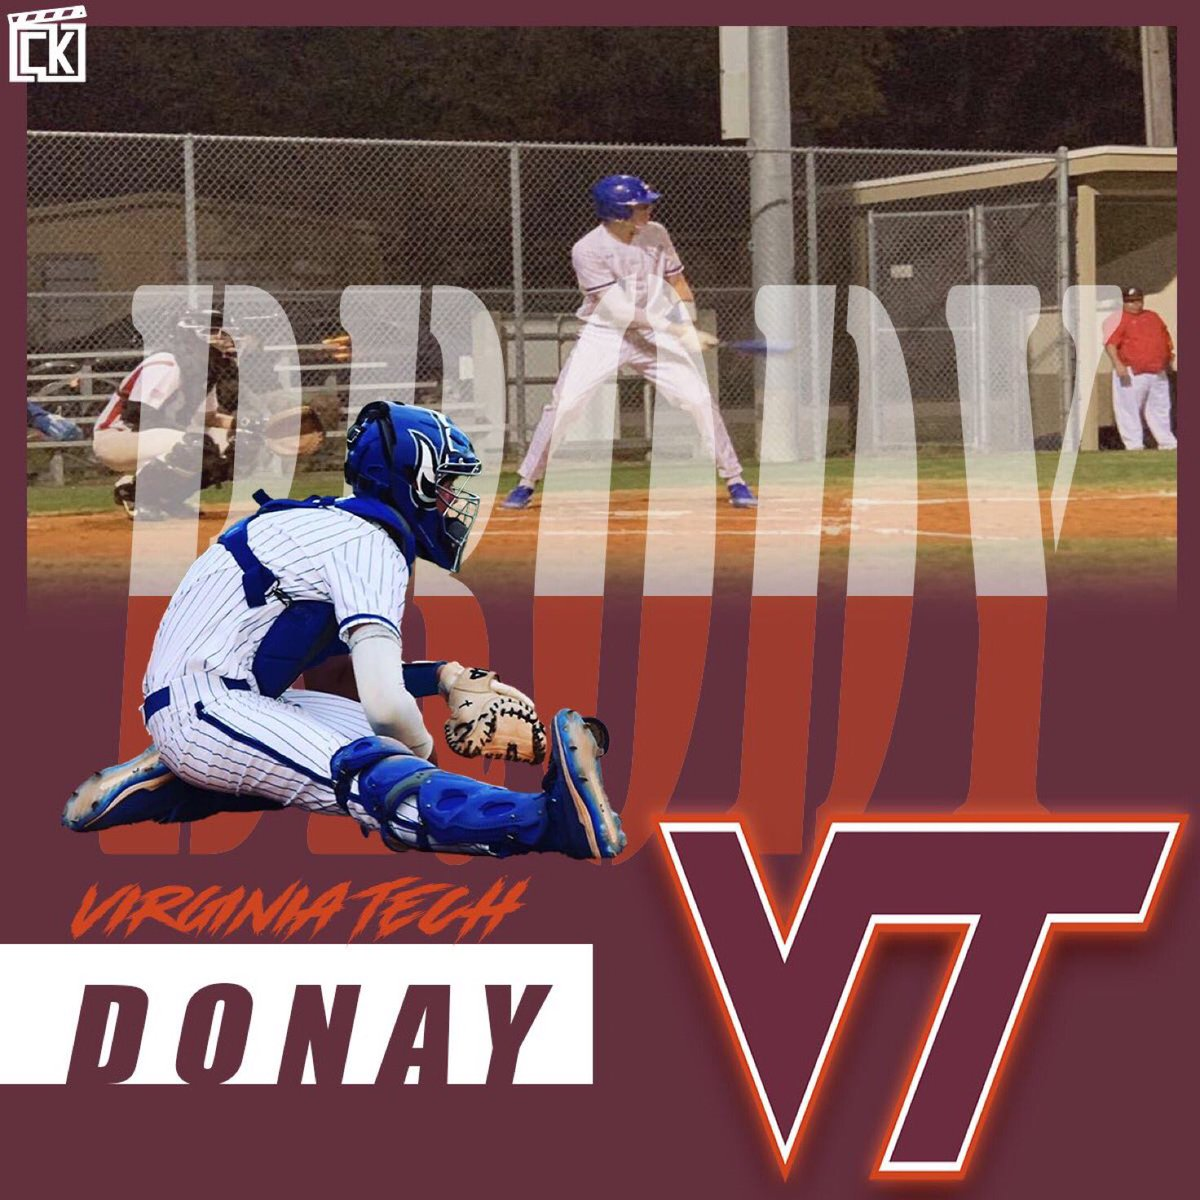 I'm extremely blessed and excited to announce that I will be continuing my athletic and academic career At Virginia Tech!! I want to thank God, and my mom and dad and all my coaches and trainers that helped me get here today! GO Hokies @OstingerAcademy @PerfectGameUSApic.twitter.com/CnovI6DOz3